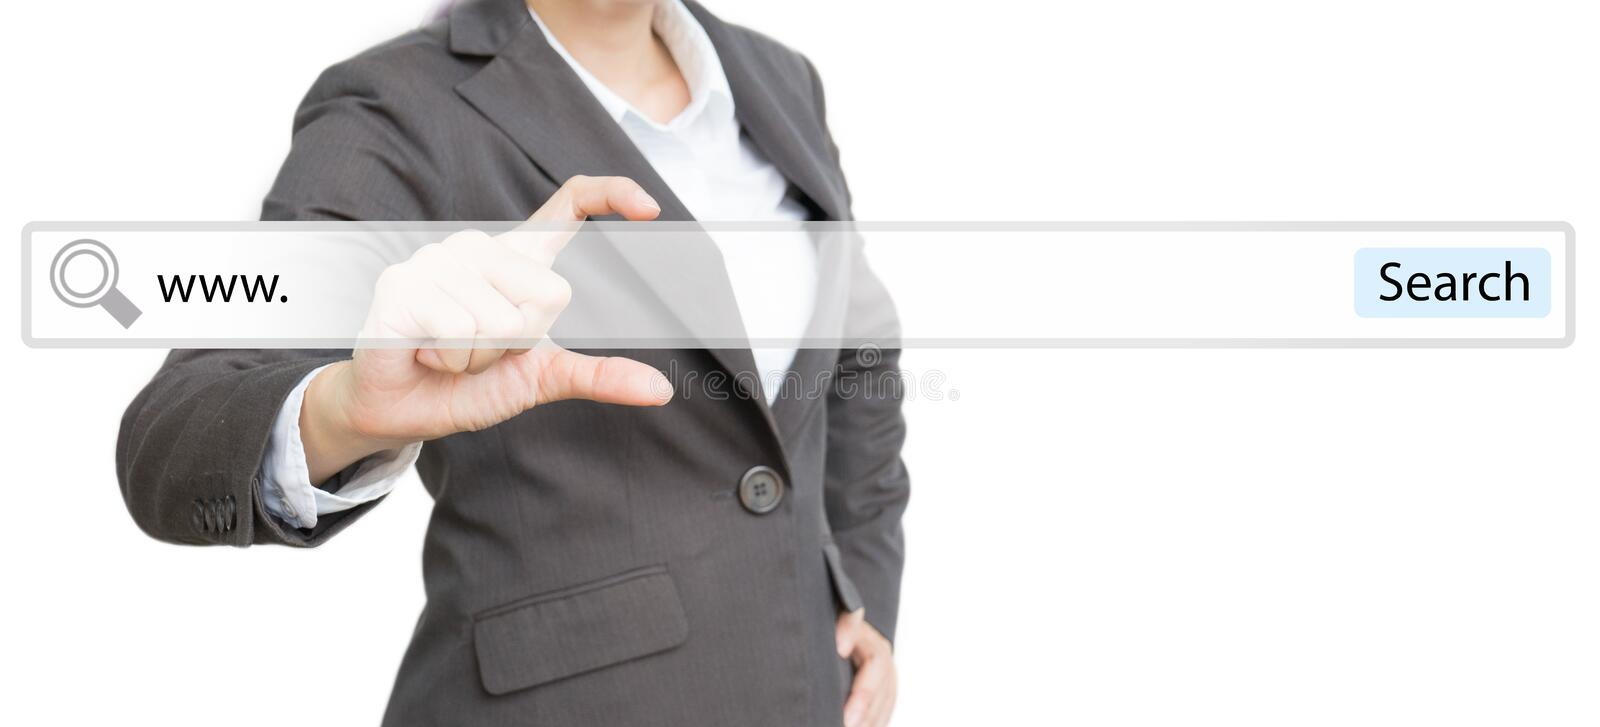 Business people showing tab for search website royalty free stock image